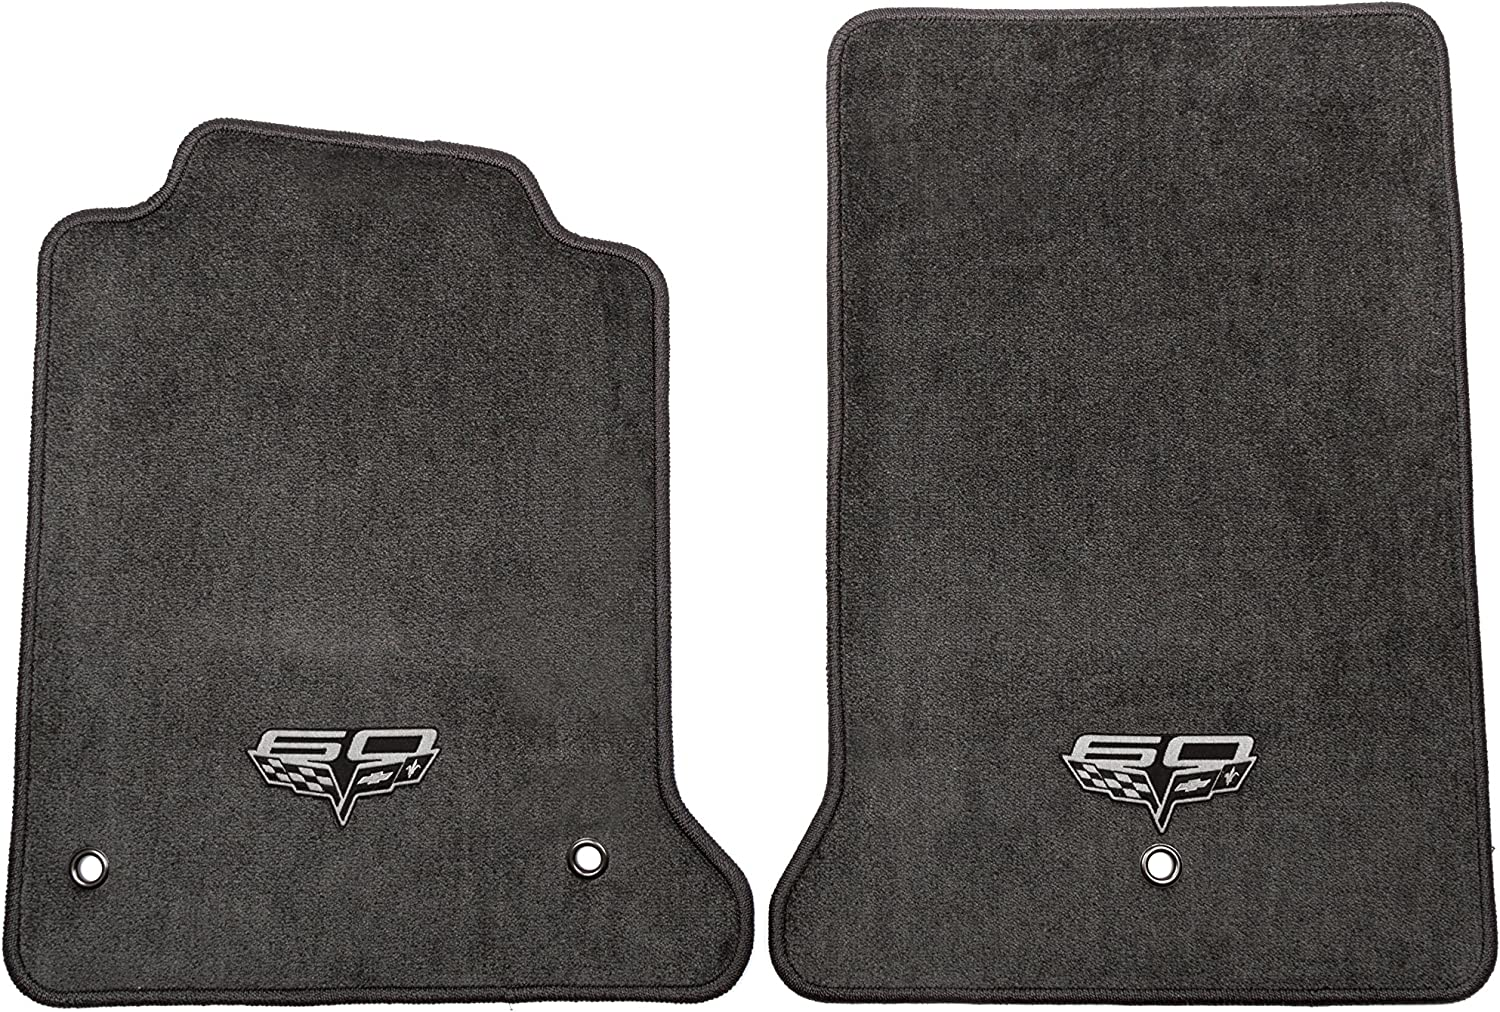 GM Accessories 17800403 Front Carpeted Floor Mats in Ebony with GMC Logo General Motors